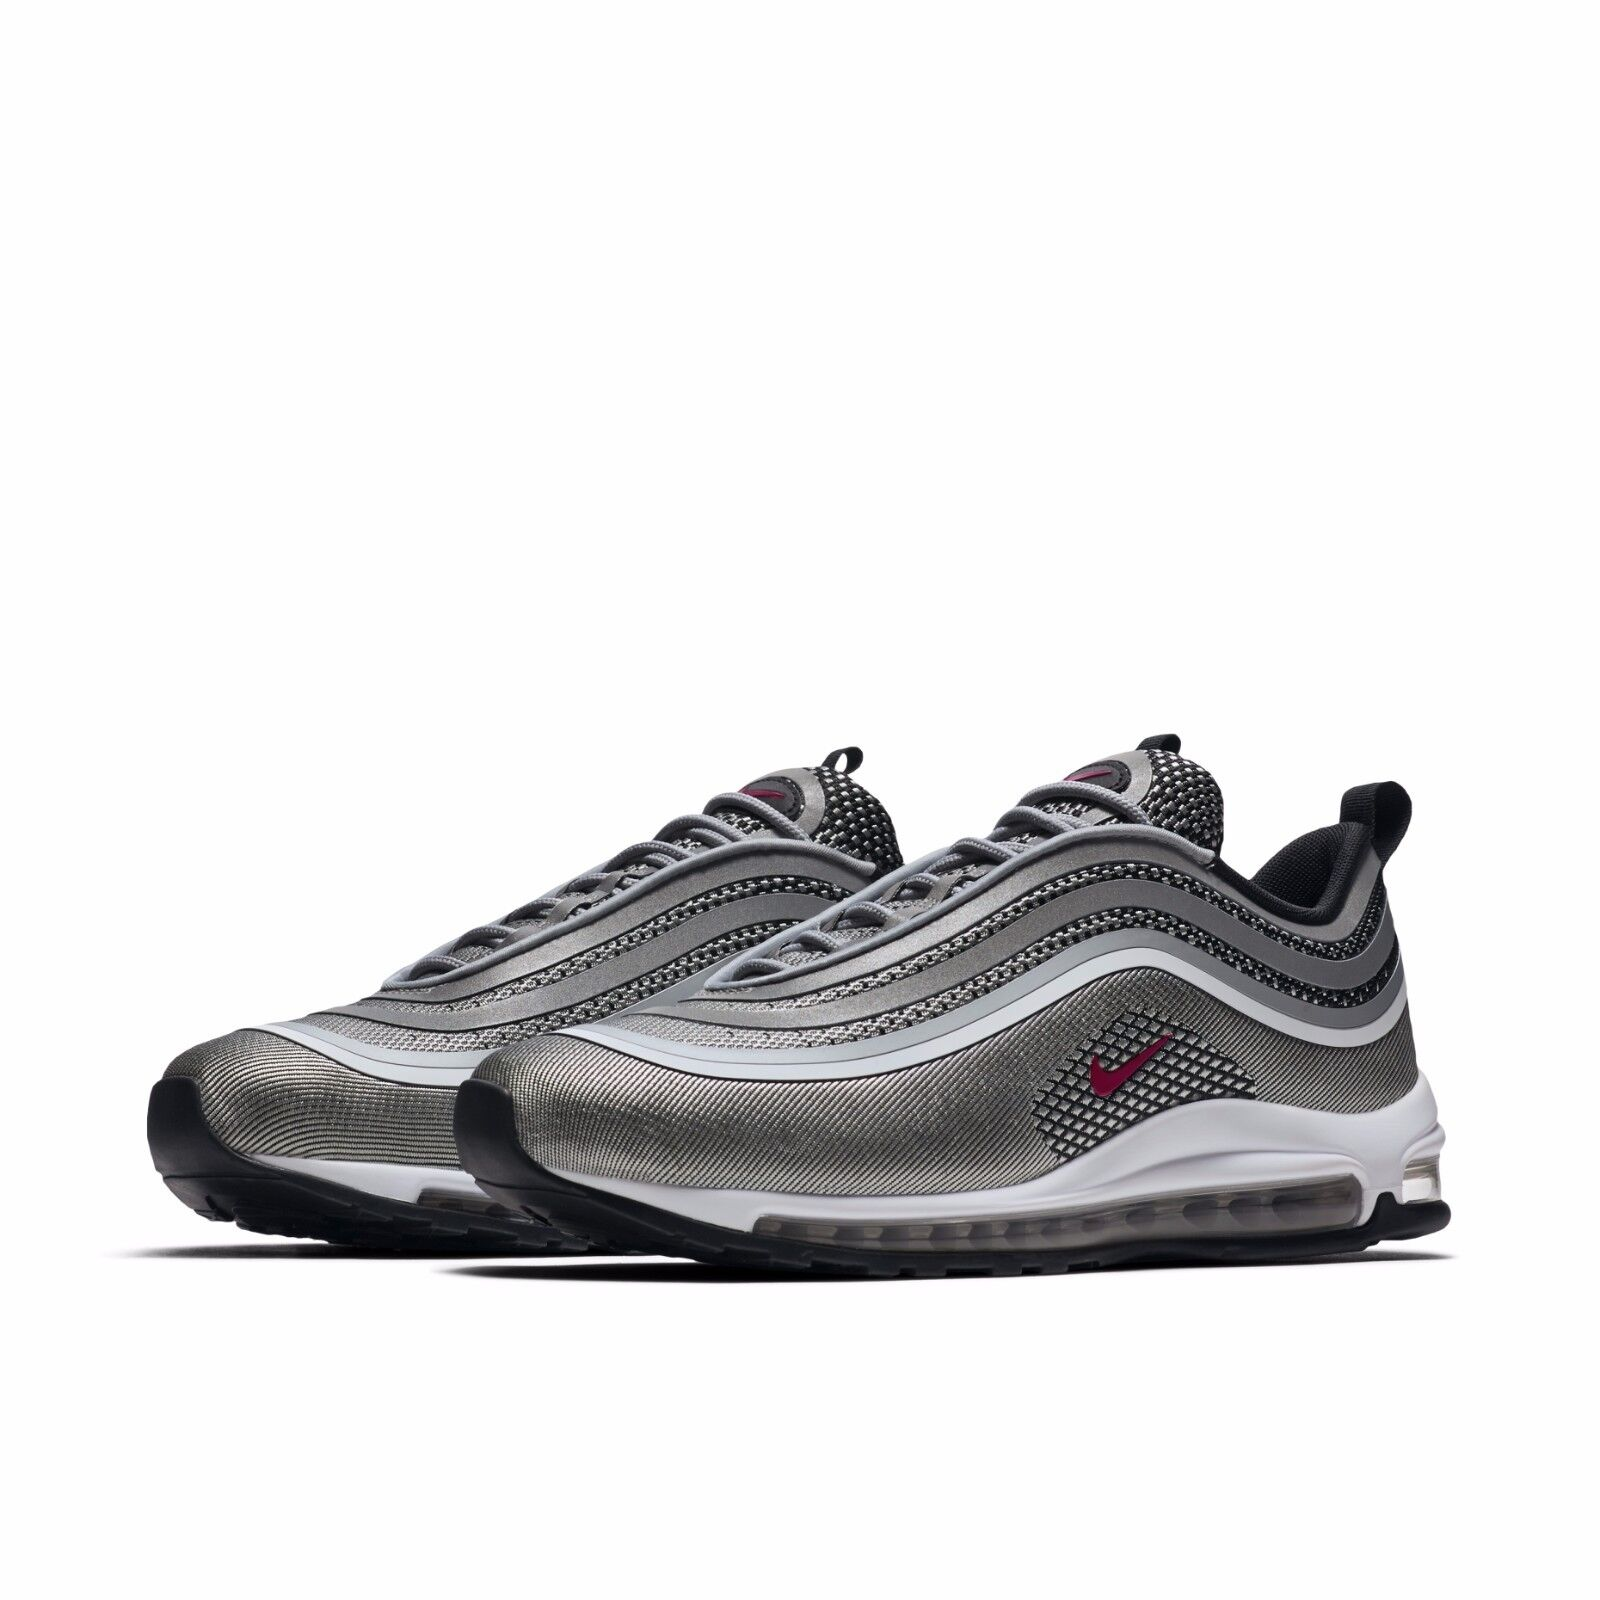 buy popular 946e4 2d57e ... amazon nike mens air max 97 ul 17 ultra metallic silver bullet og  sneakers 918356 003